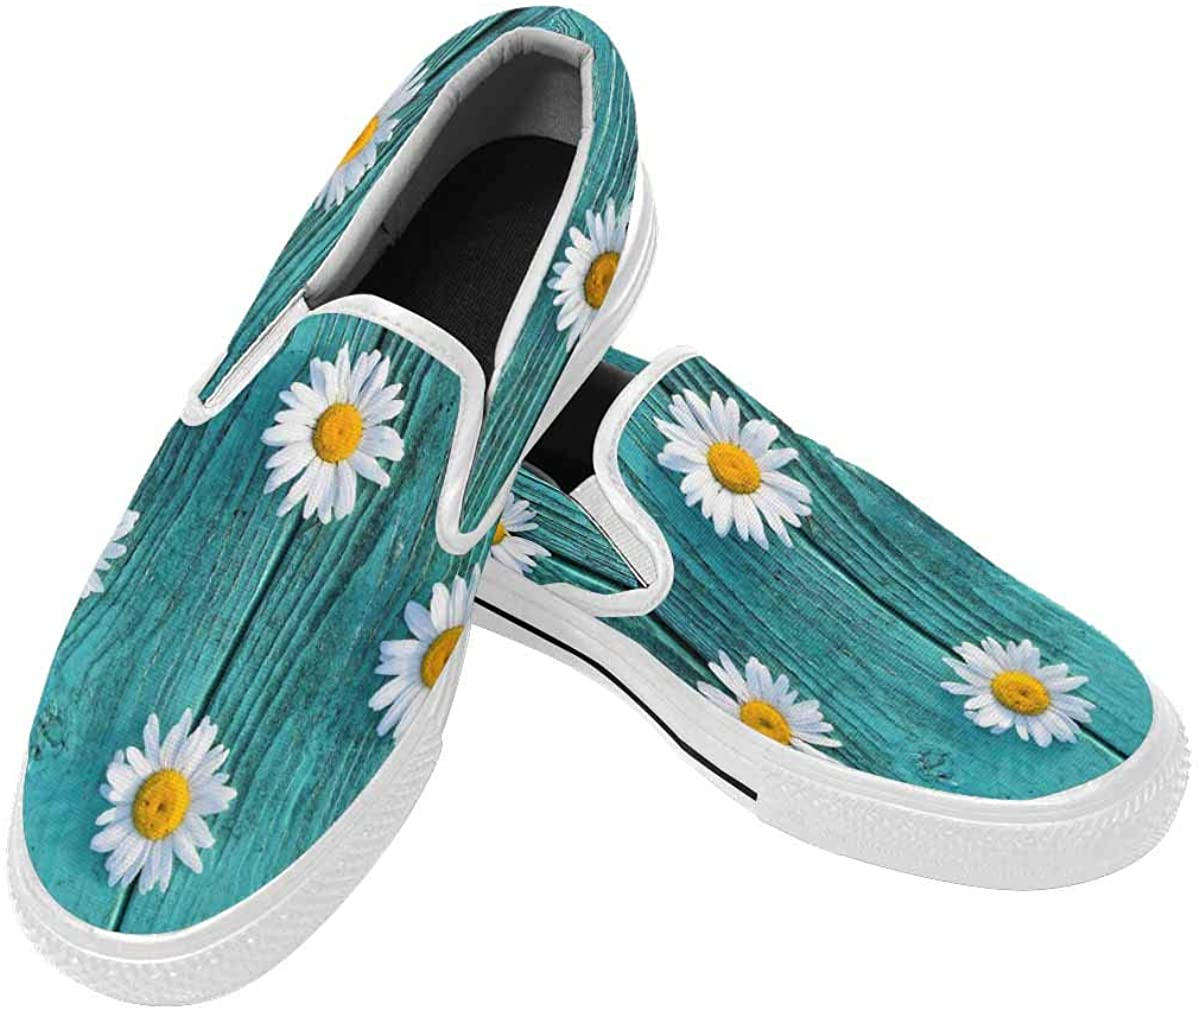 InterestPrint Slip-On Loafers Casual Shoes Breathable Canvas Lightweight Walking Shoes for Men White Wildflowers Daisies